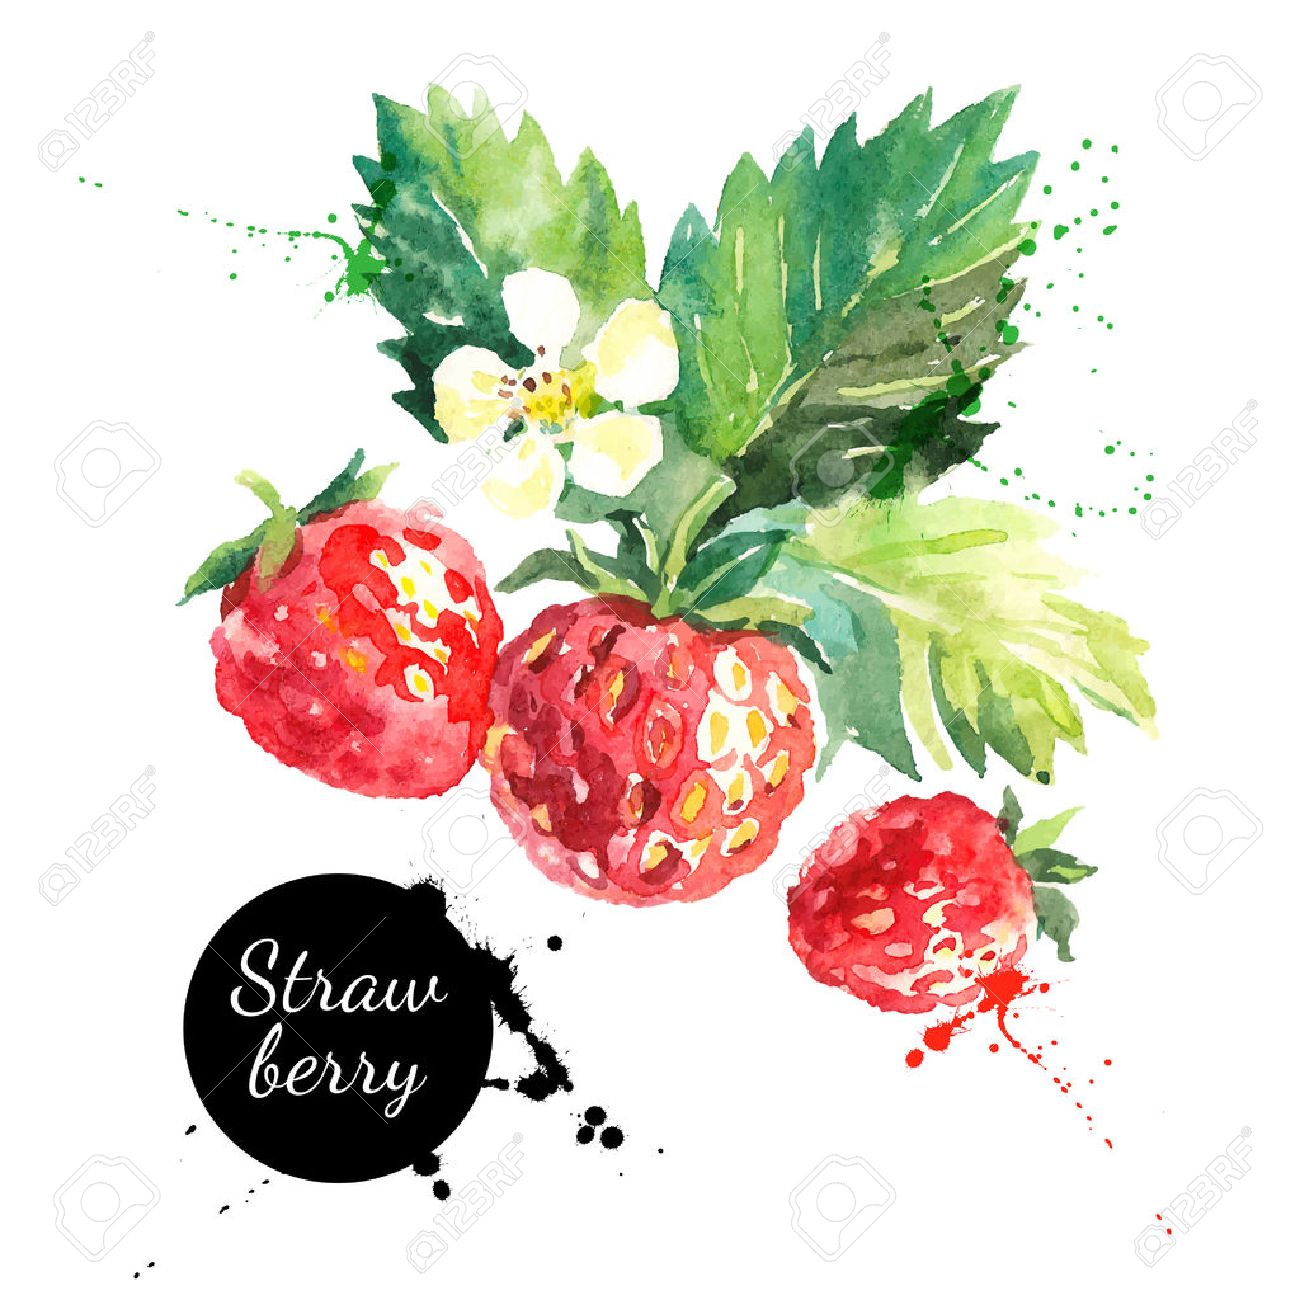 Hand drawn watercolor painting strawberry on white background. Vector illustration of berries - 42910596